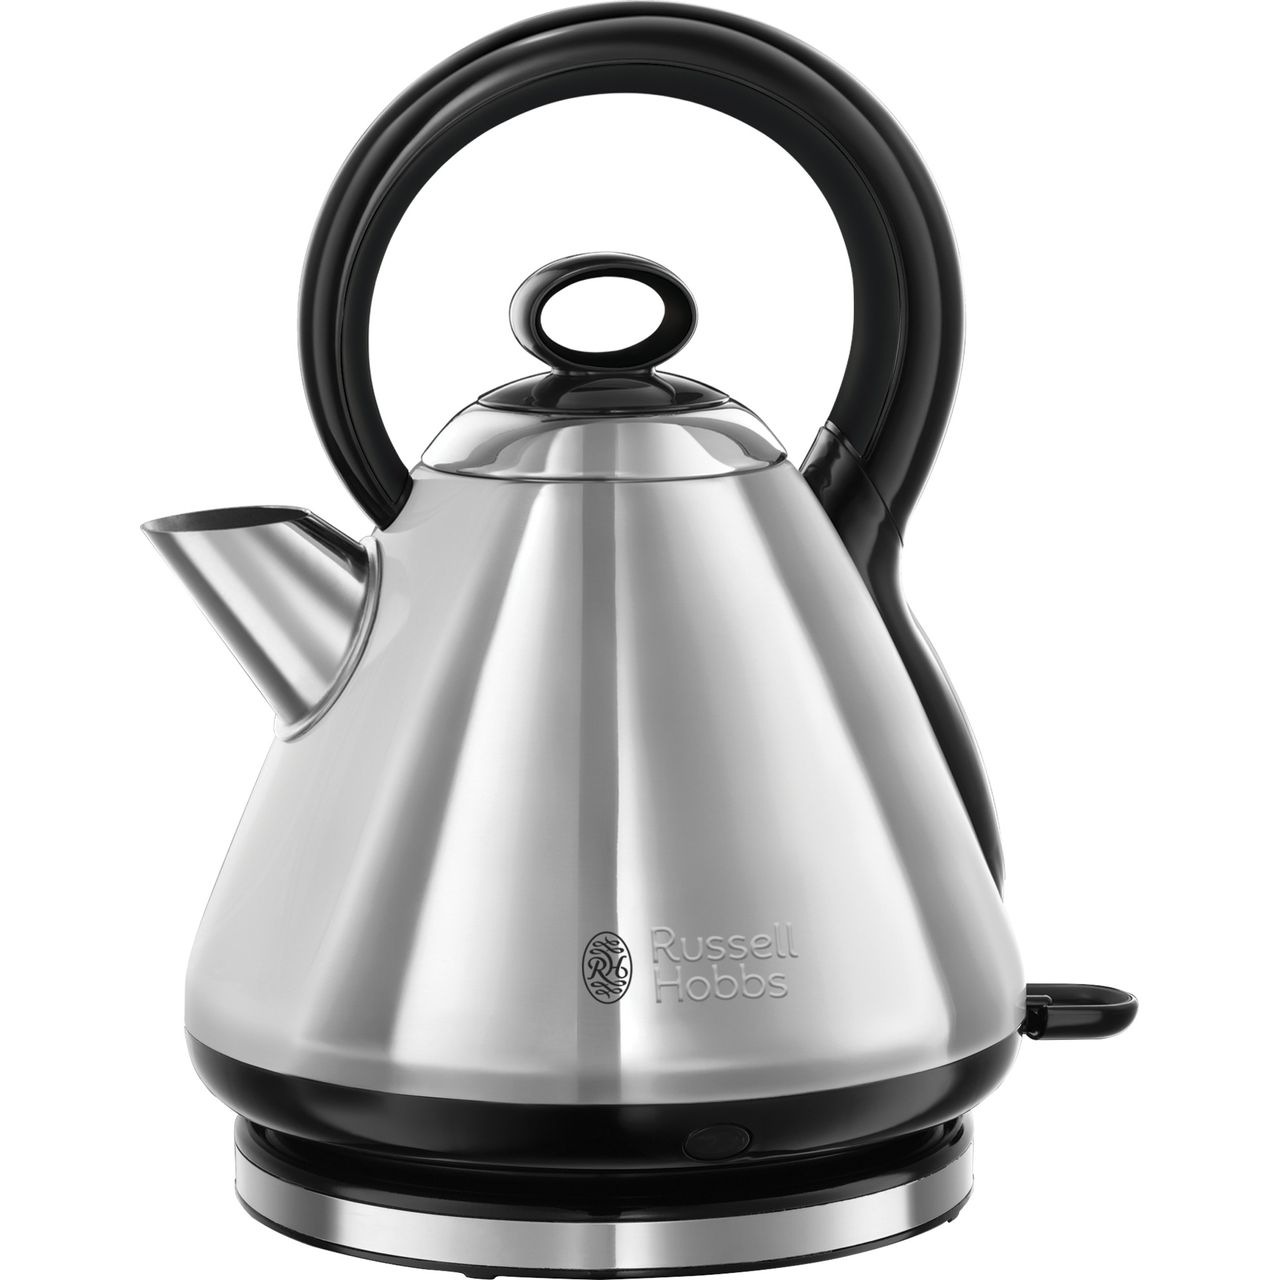 Quiet Electric Kettle Reviews: Russell Hobbs Legacy Quiet Boil 21887 Kettle Review